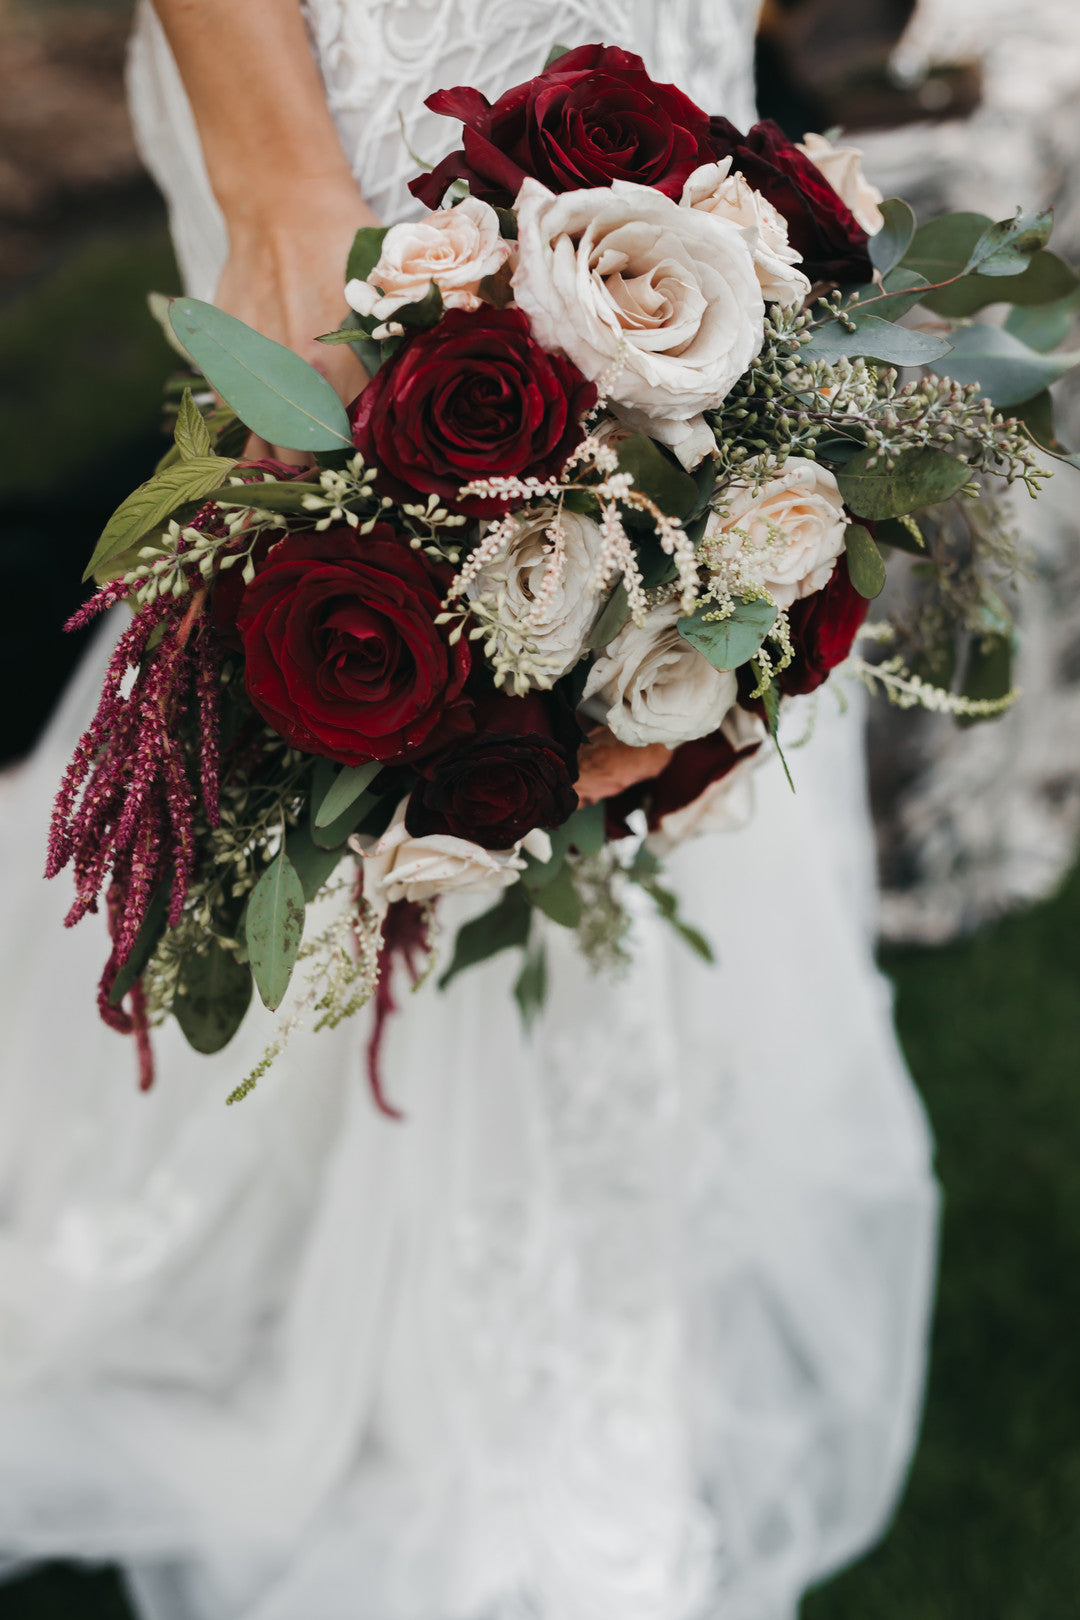 Bride Bouquet | A Vintage Gothic Halloween Wedding | Kate Aspen